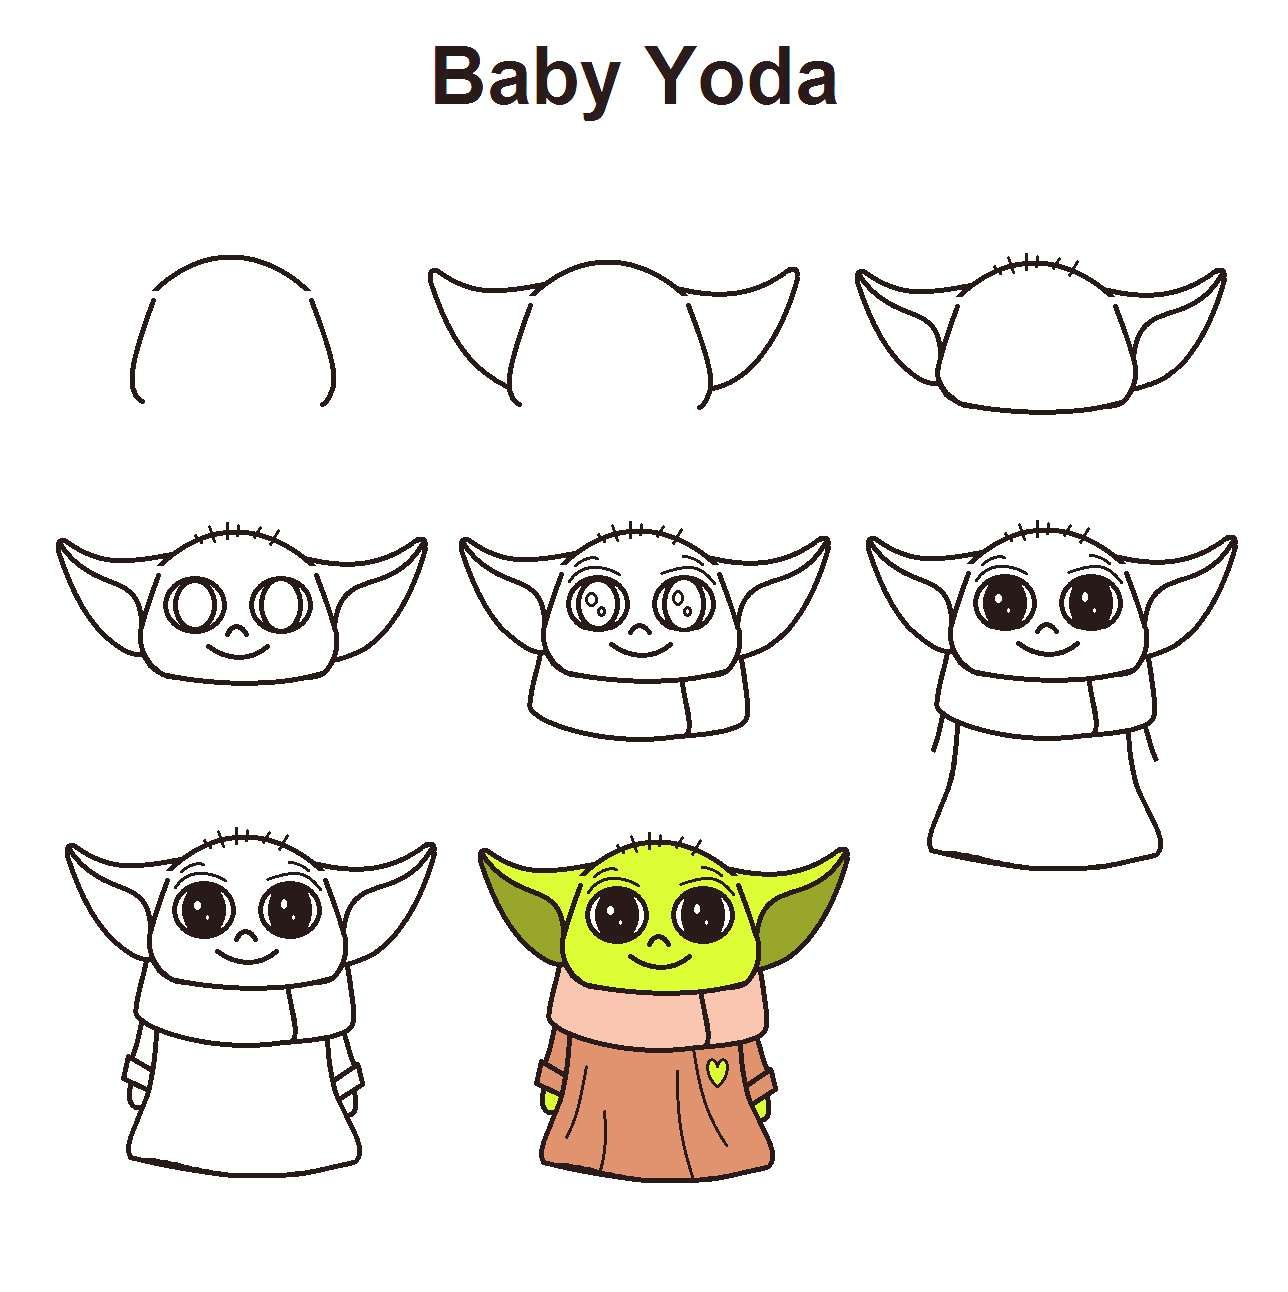 Babyyodawallpaper Mandalorian Stepbystep Tutorial Baby Yoda Draw From Star Wars The To Baby Easy Doodles Drawings Cute Easy Drawings Easy Drawings